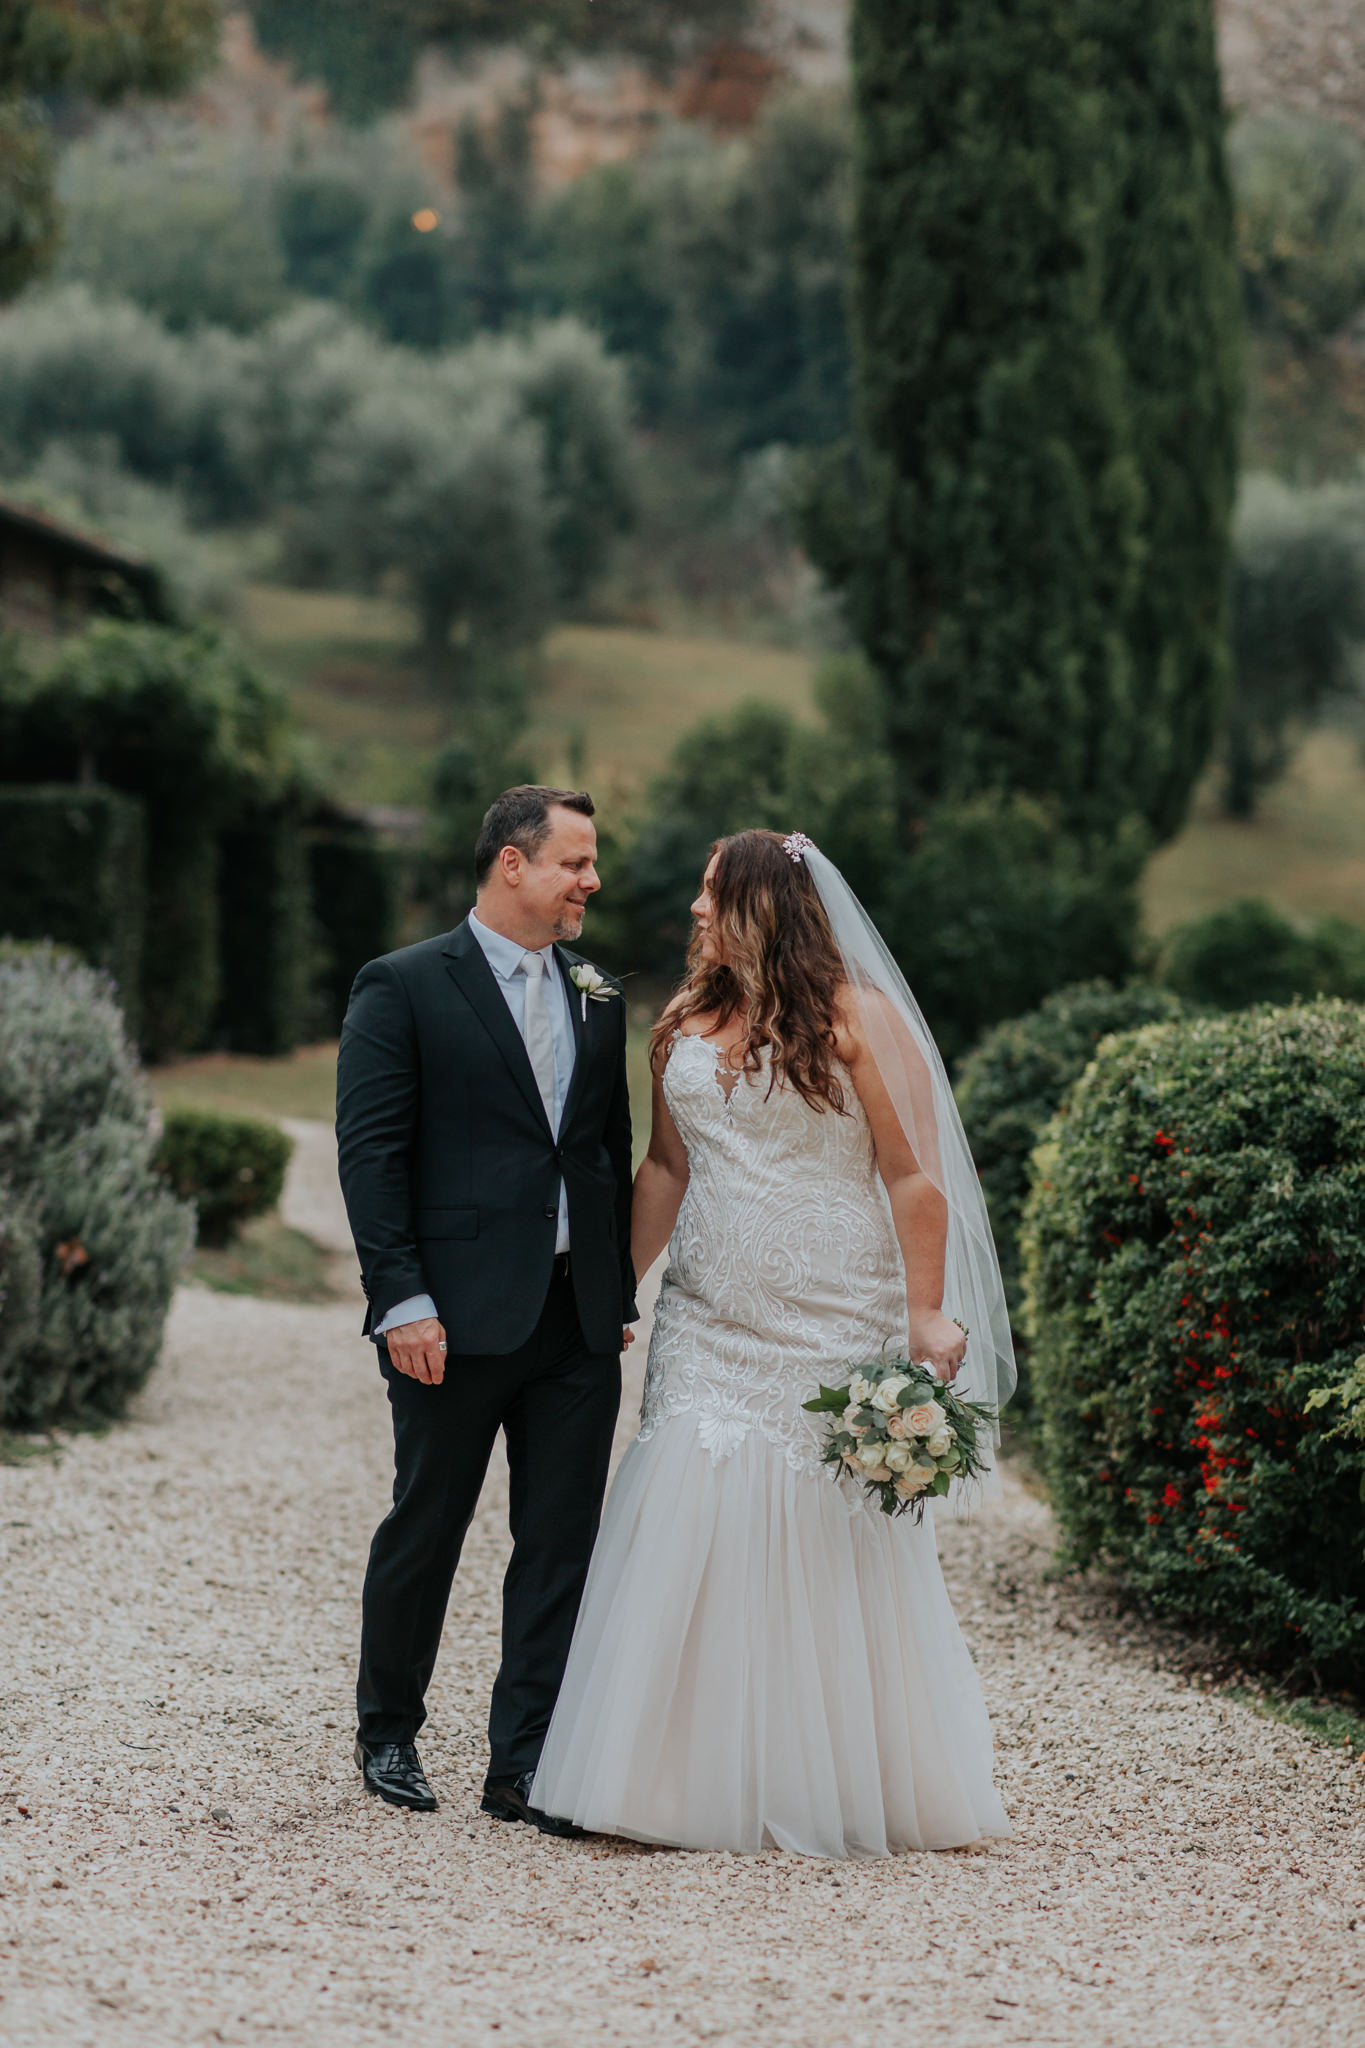 Elkie&Doug_Wedding_Italy_KristieCarrickPhotography_LOW-594.jpg